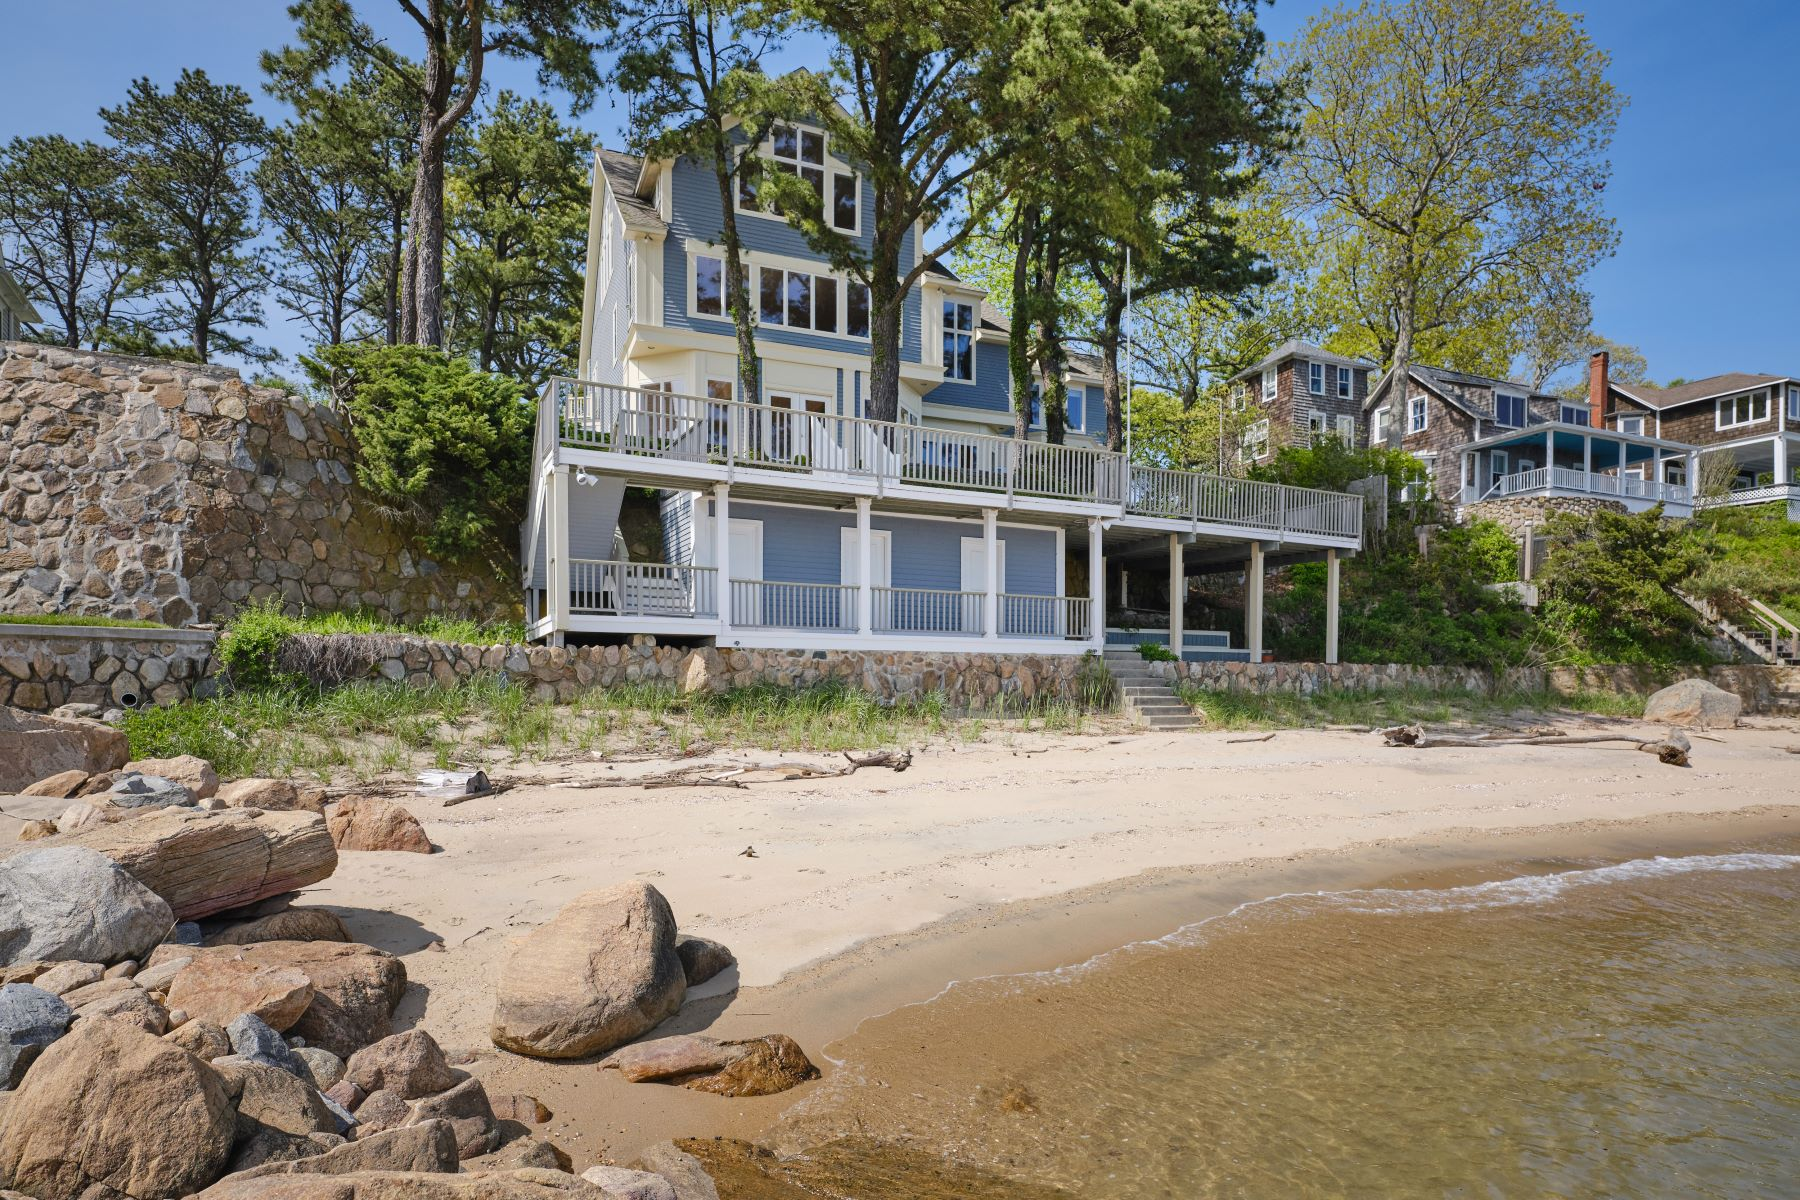 for Sale at 72 & 81 Groveway Clinton, Connecticut 06413 United States